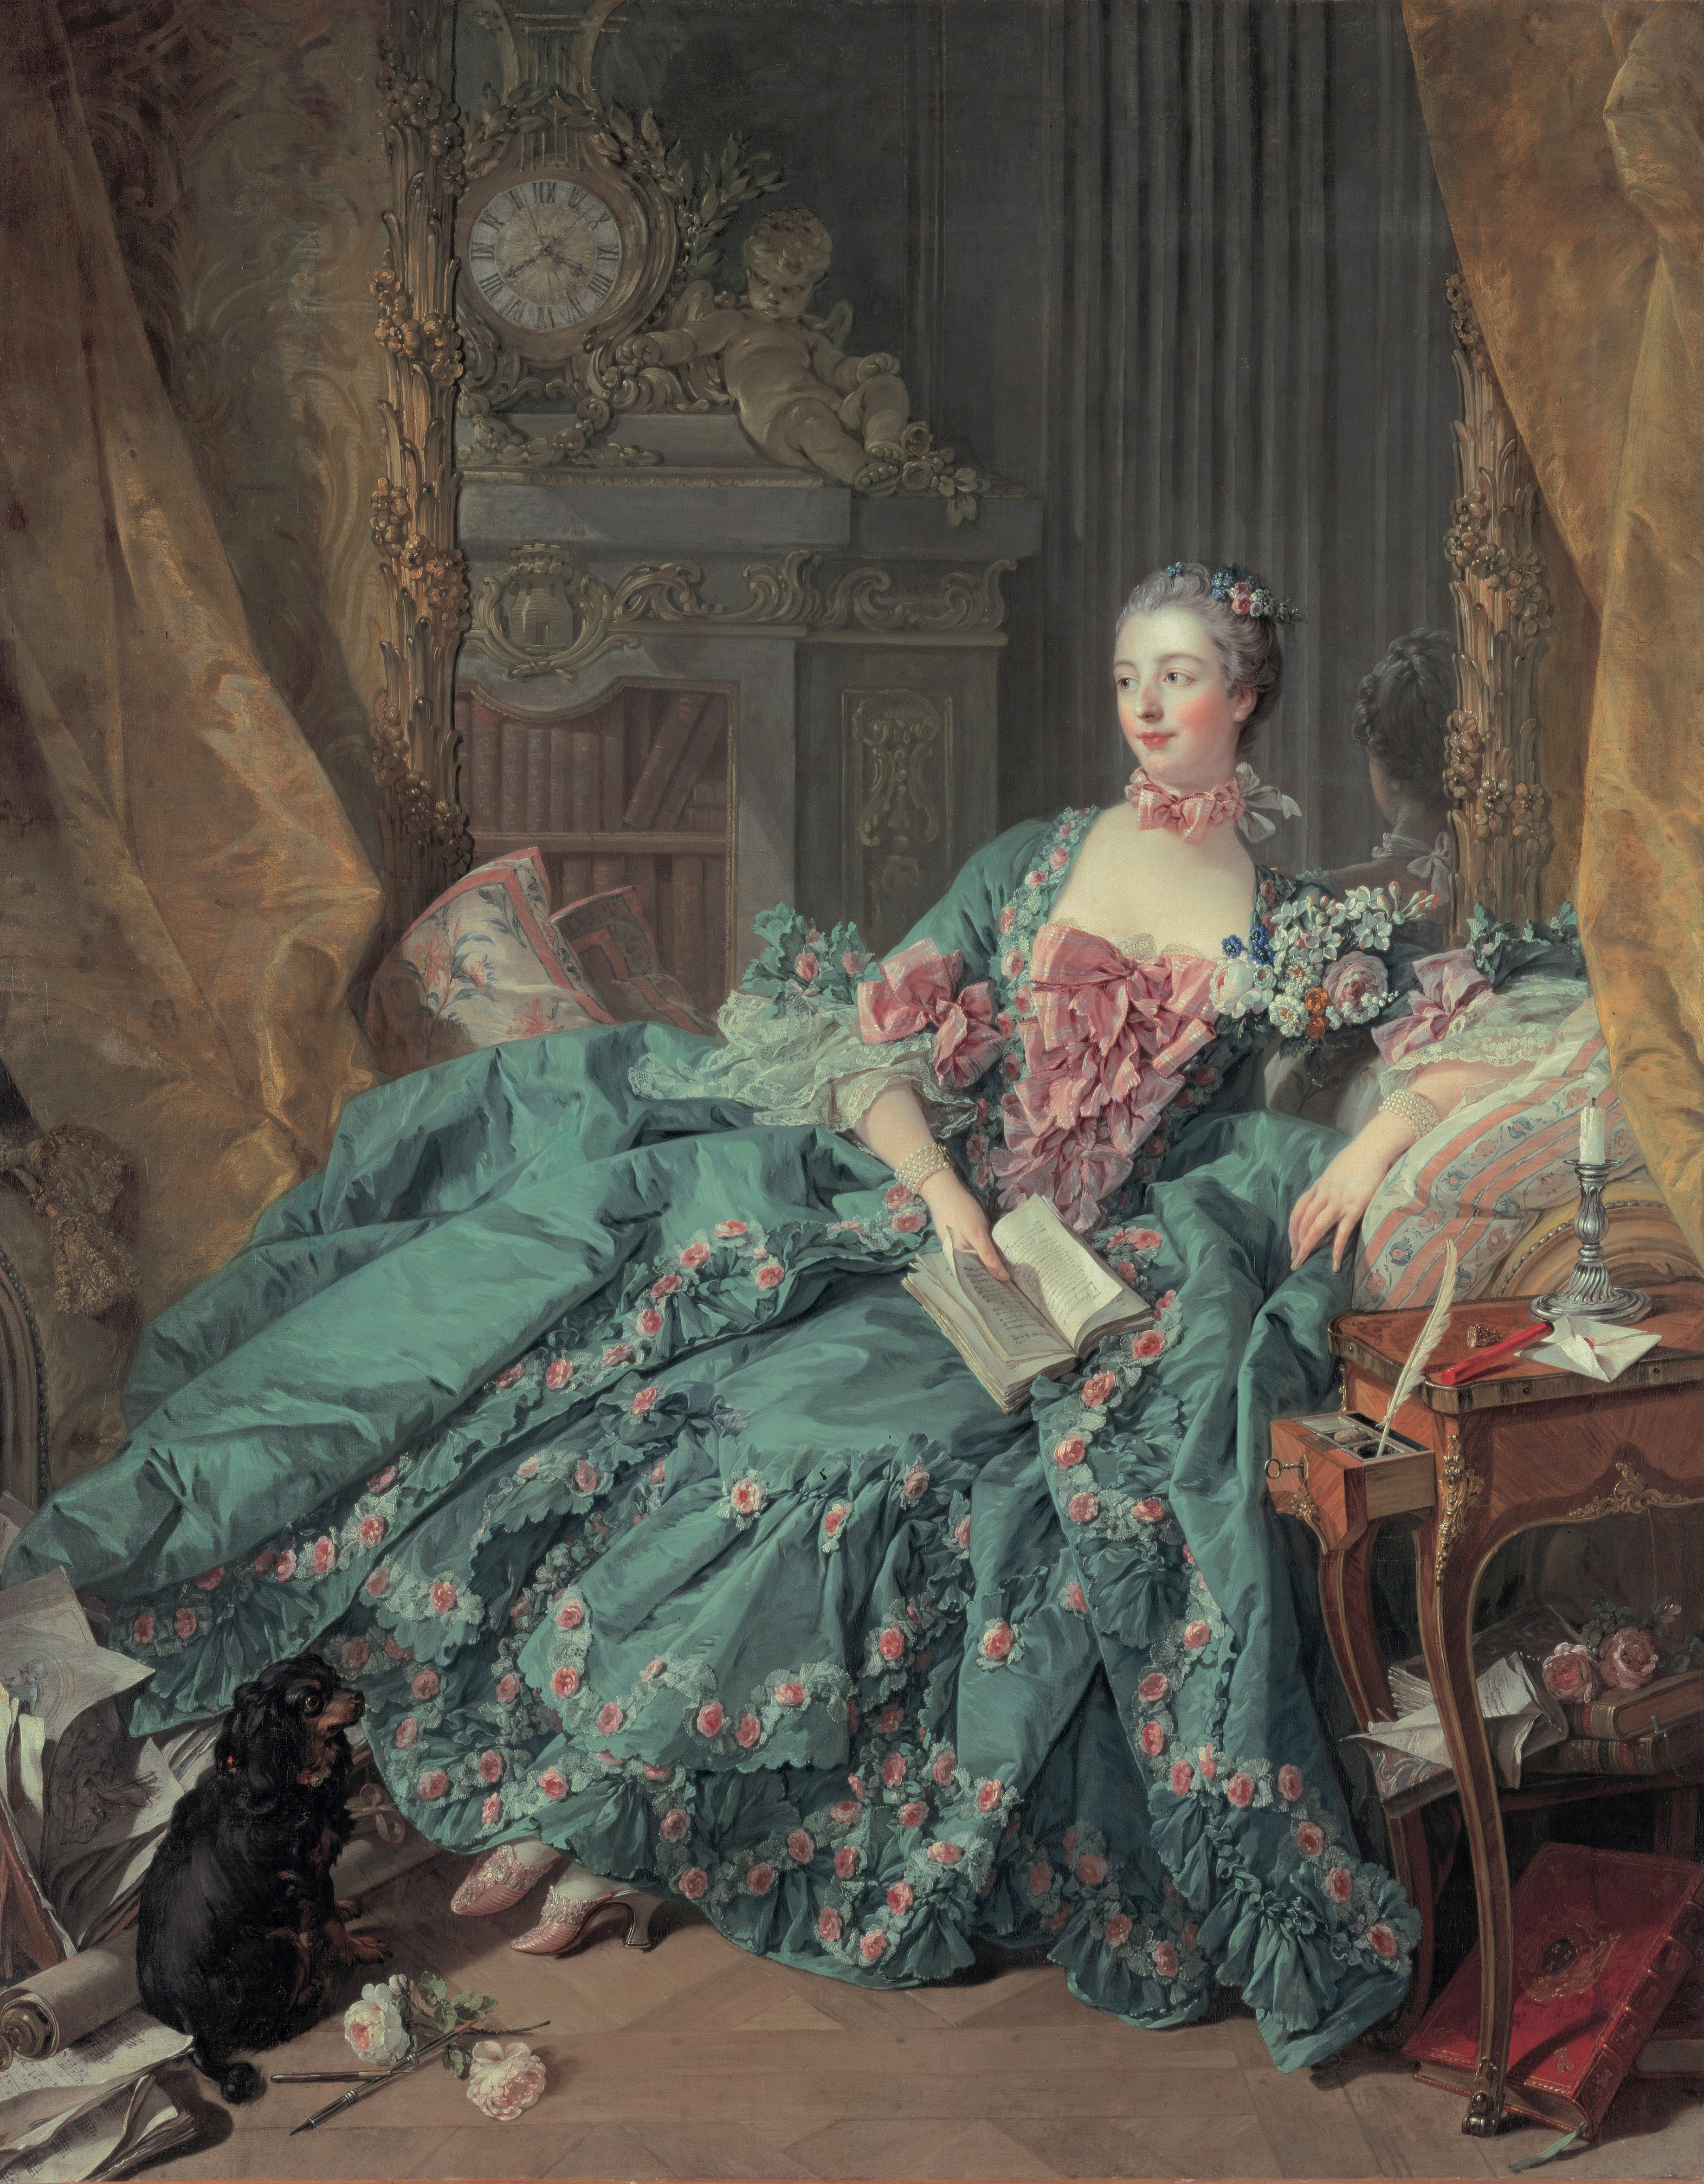 http://upload.wikimedia.org/wikipedia/commons/8/82/Madame_de_Pompadour.jpg